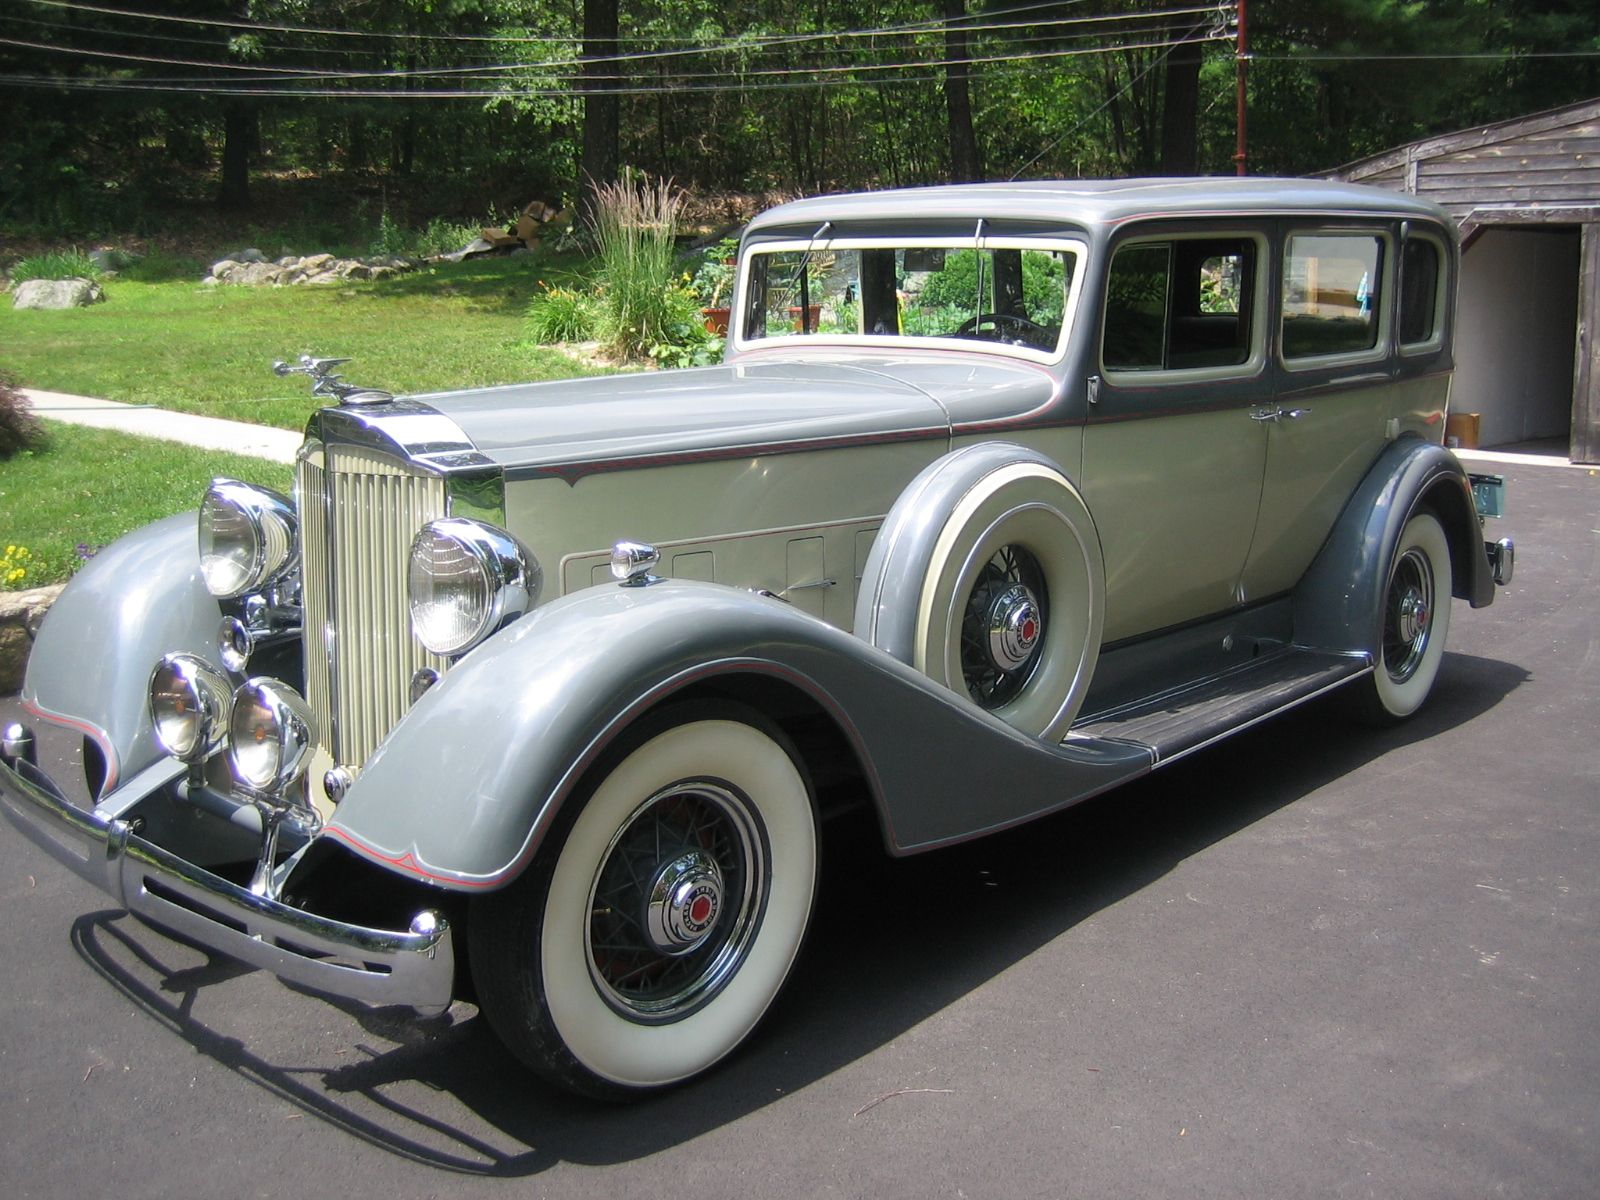 packard+cars | 1934 Packard Super Eight Sedan for sale | Automobiles ...